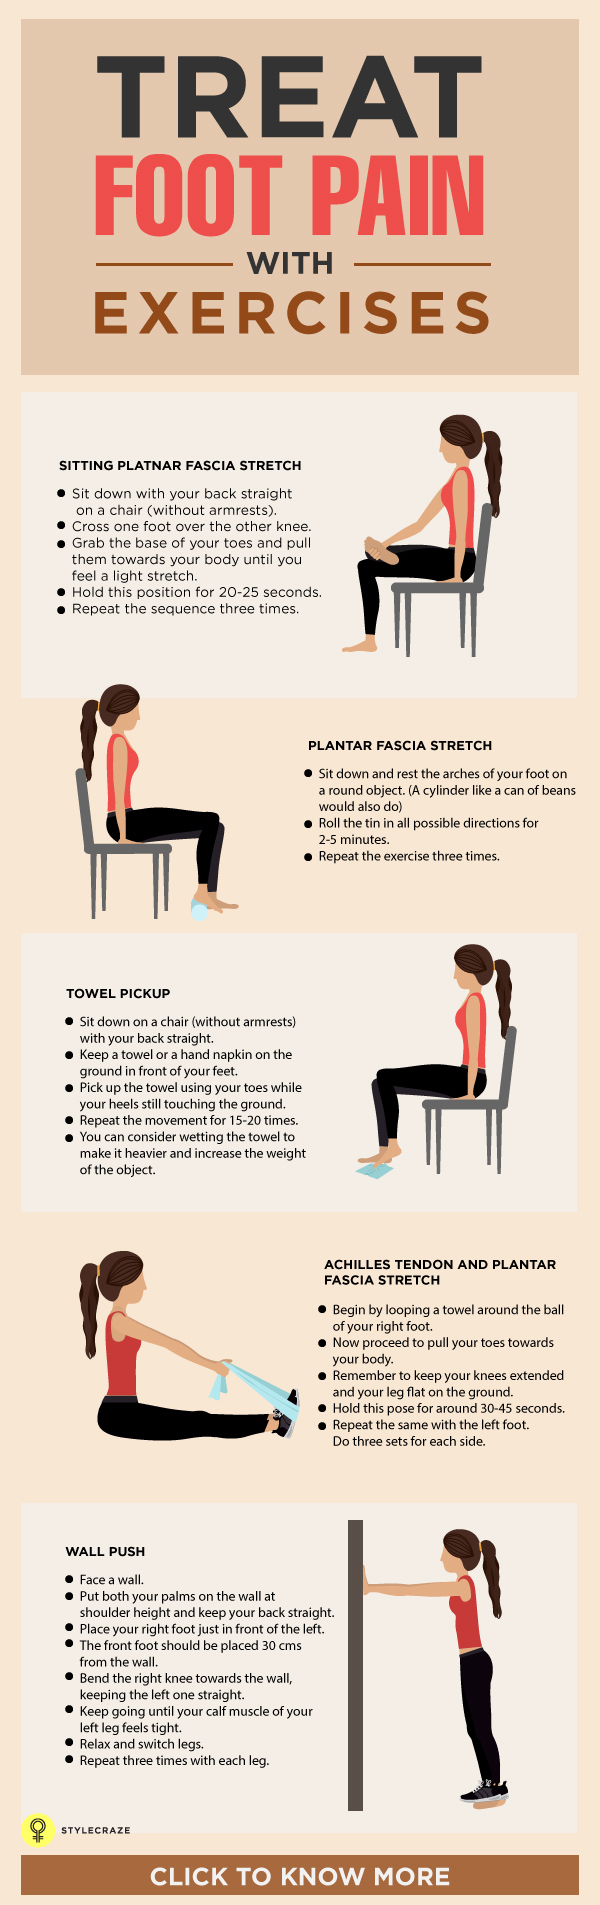 Treat Foot Pain with Exercise